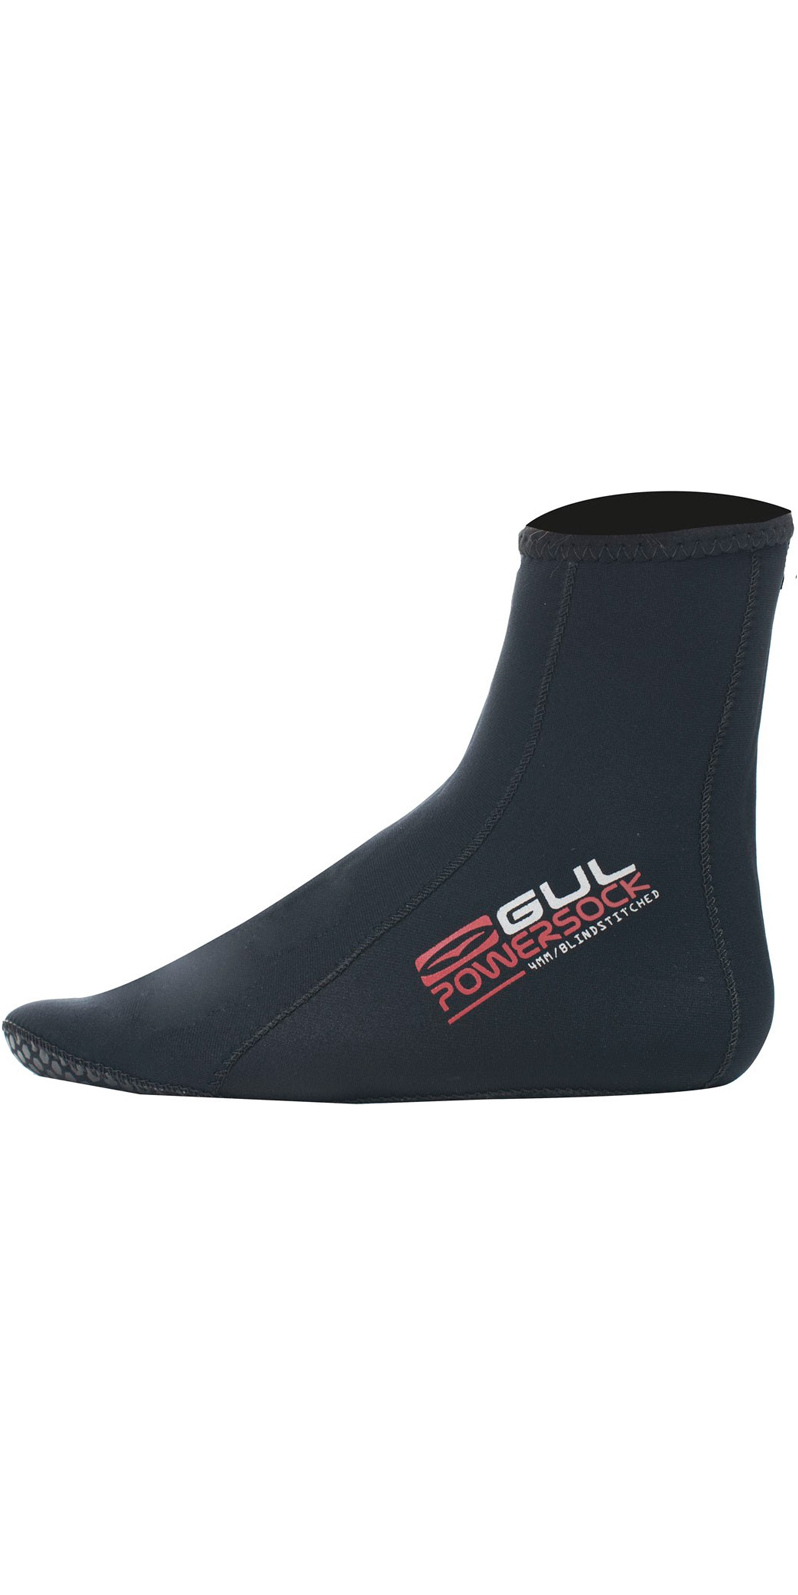 2018 Gul Power Sock 0.5mm Neoprene wetsuit sock BO1271